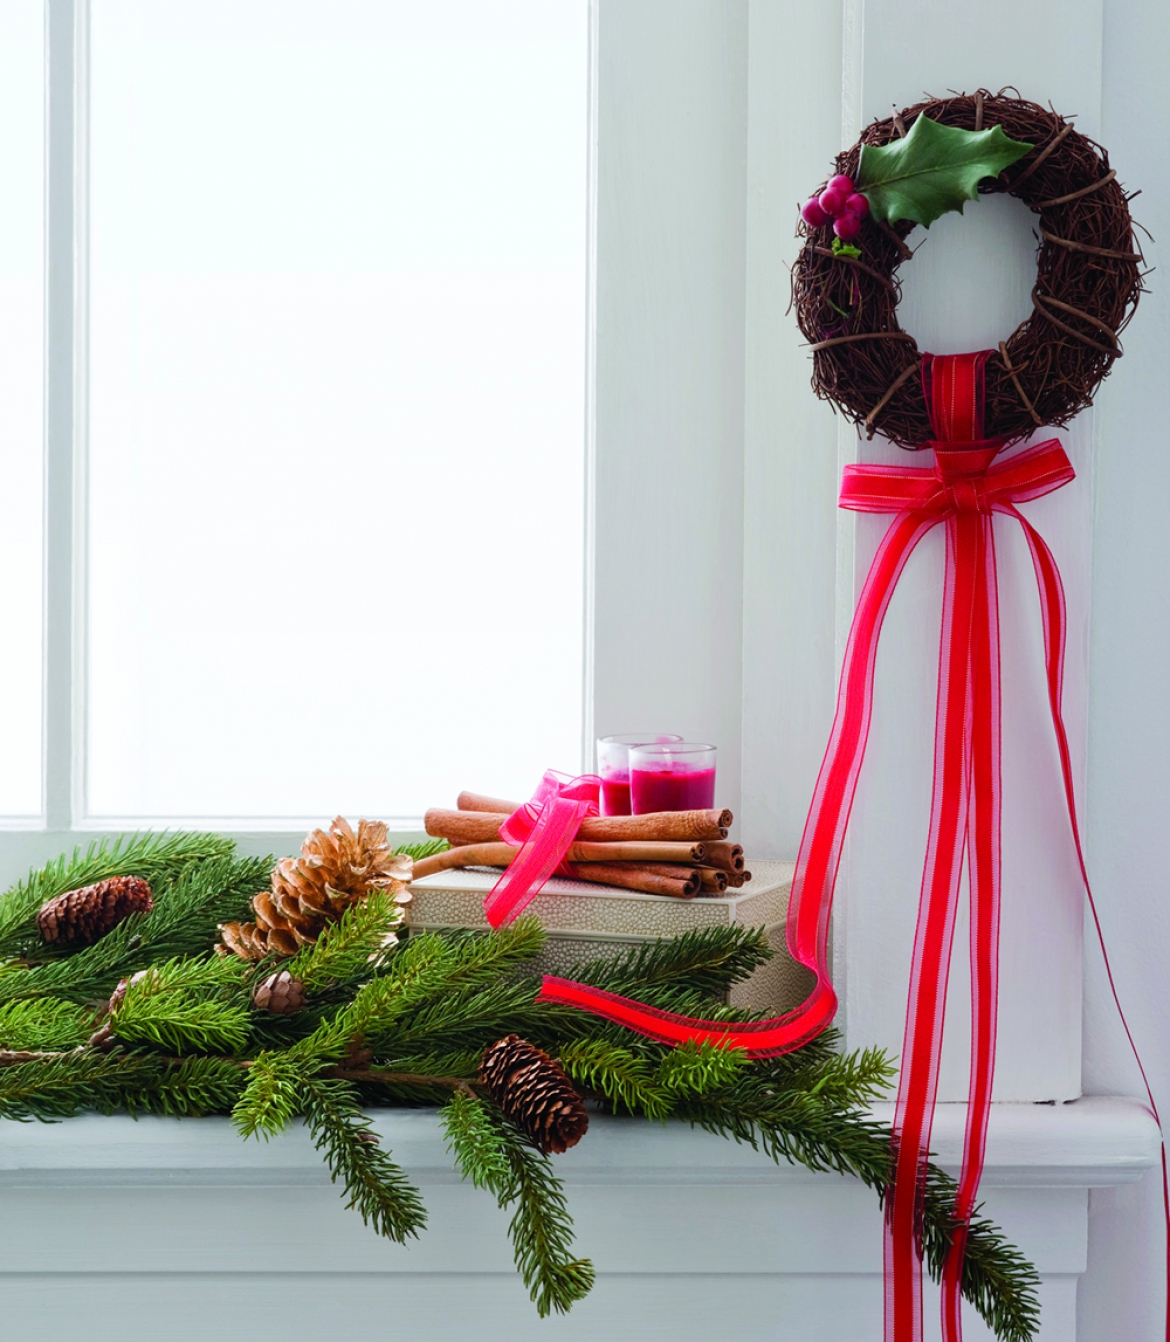 Simple Ways to Dress Up Your Home for the Holidays | GraFitz Group Advertising Agency